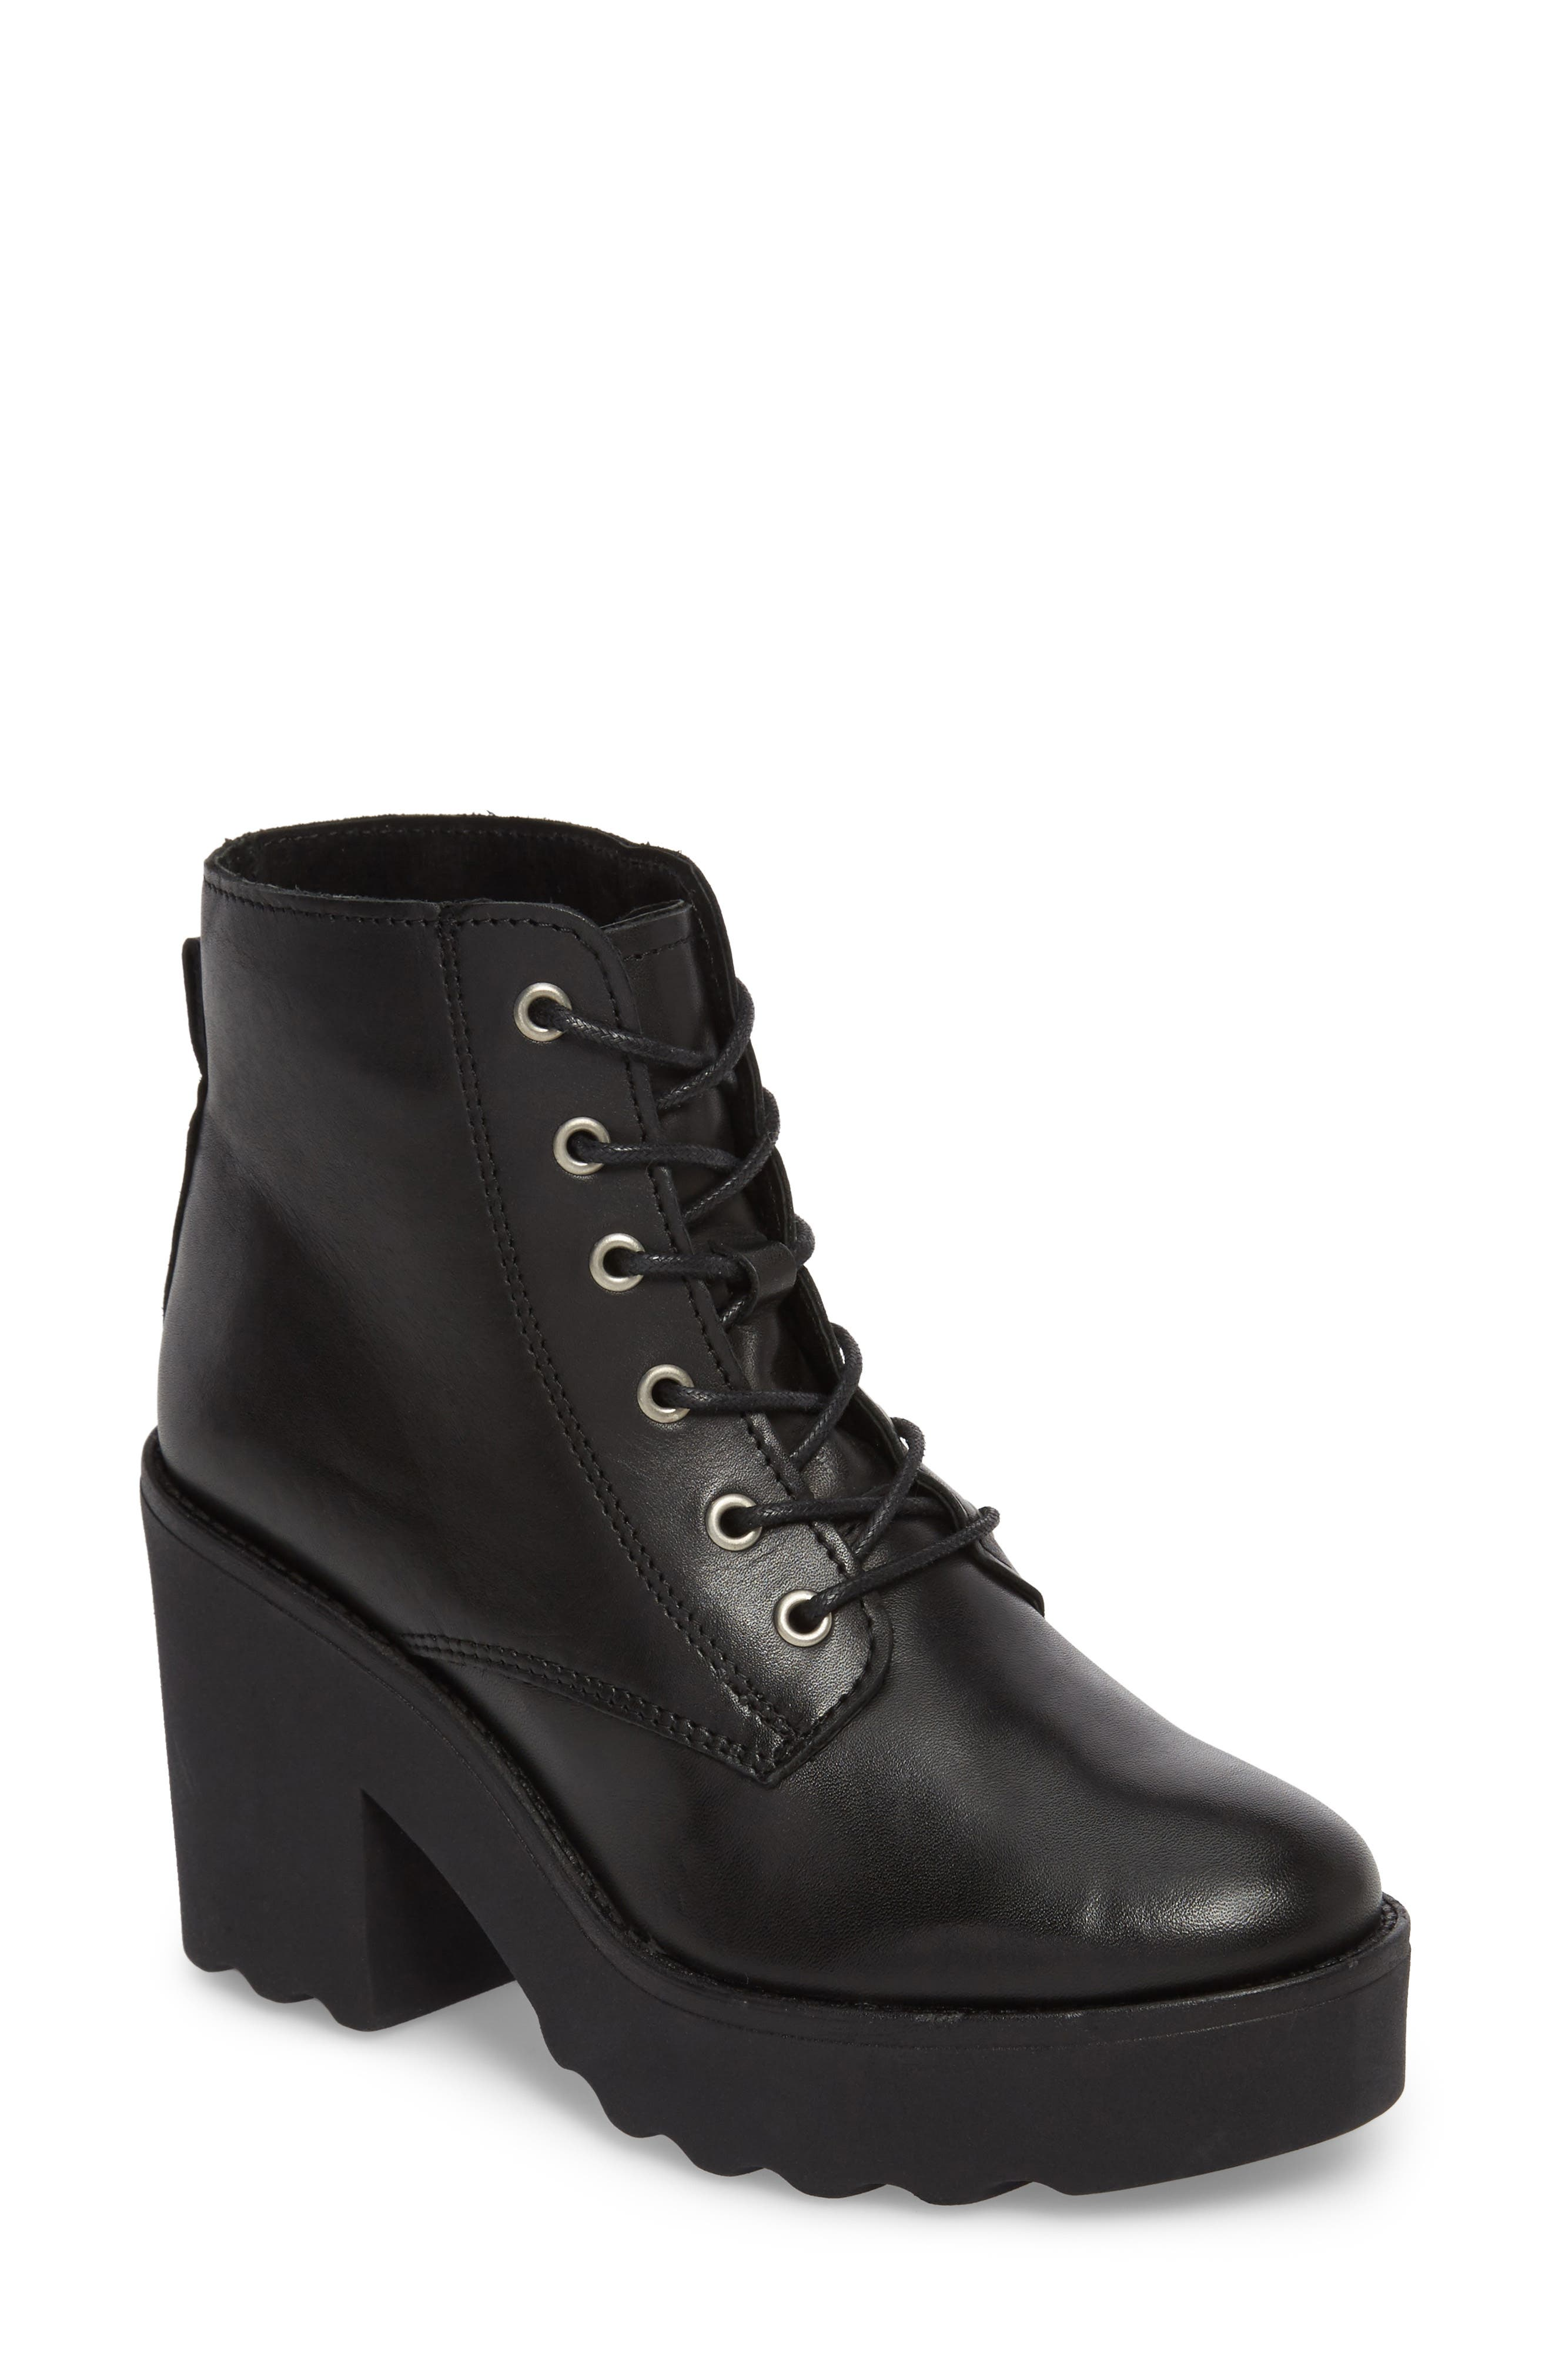 Gusto Boot,                         Main,                         color, 001